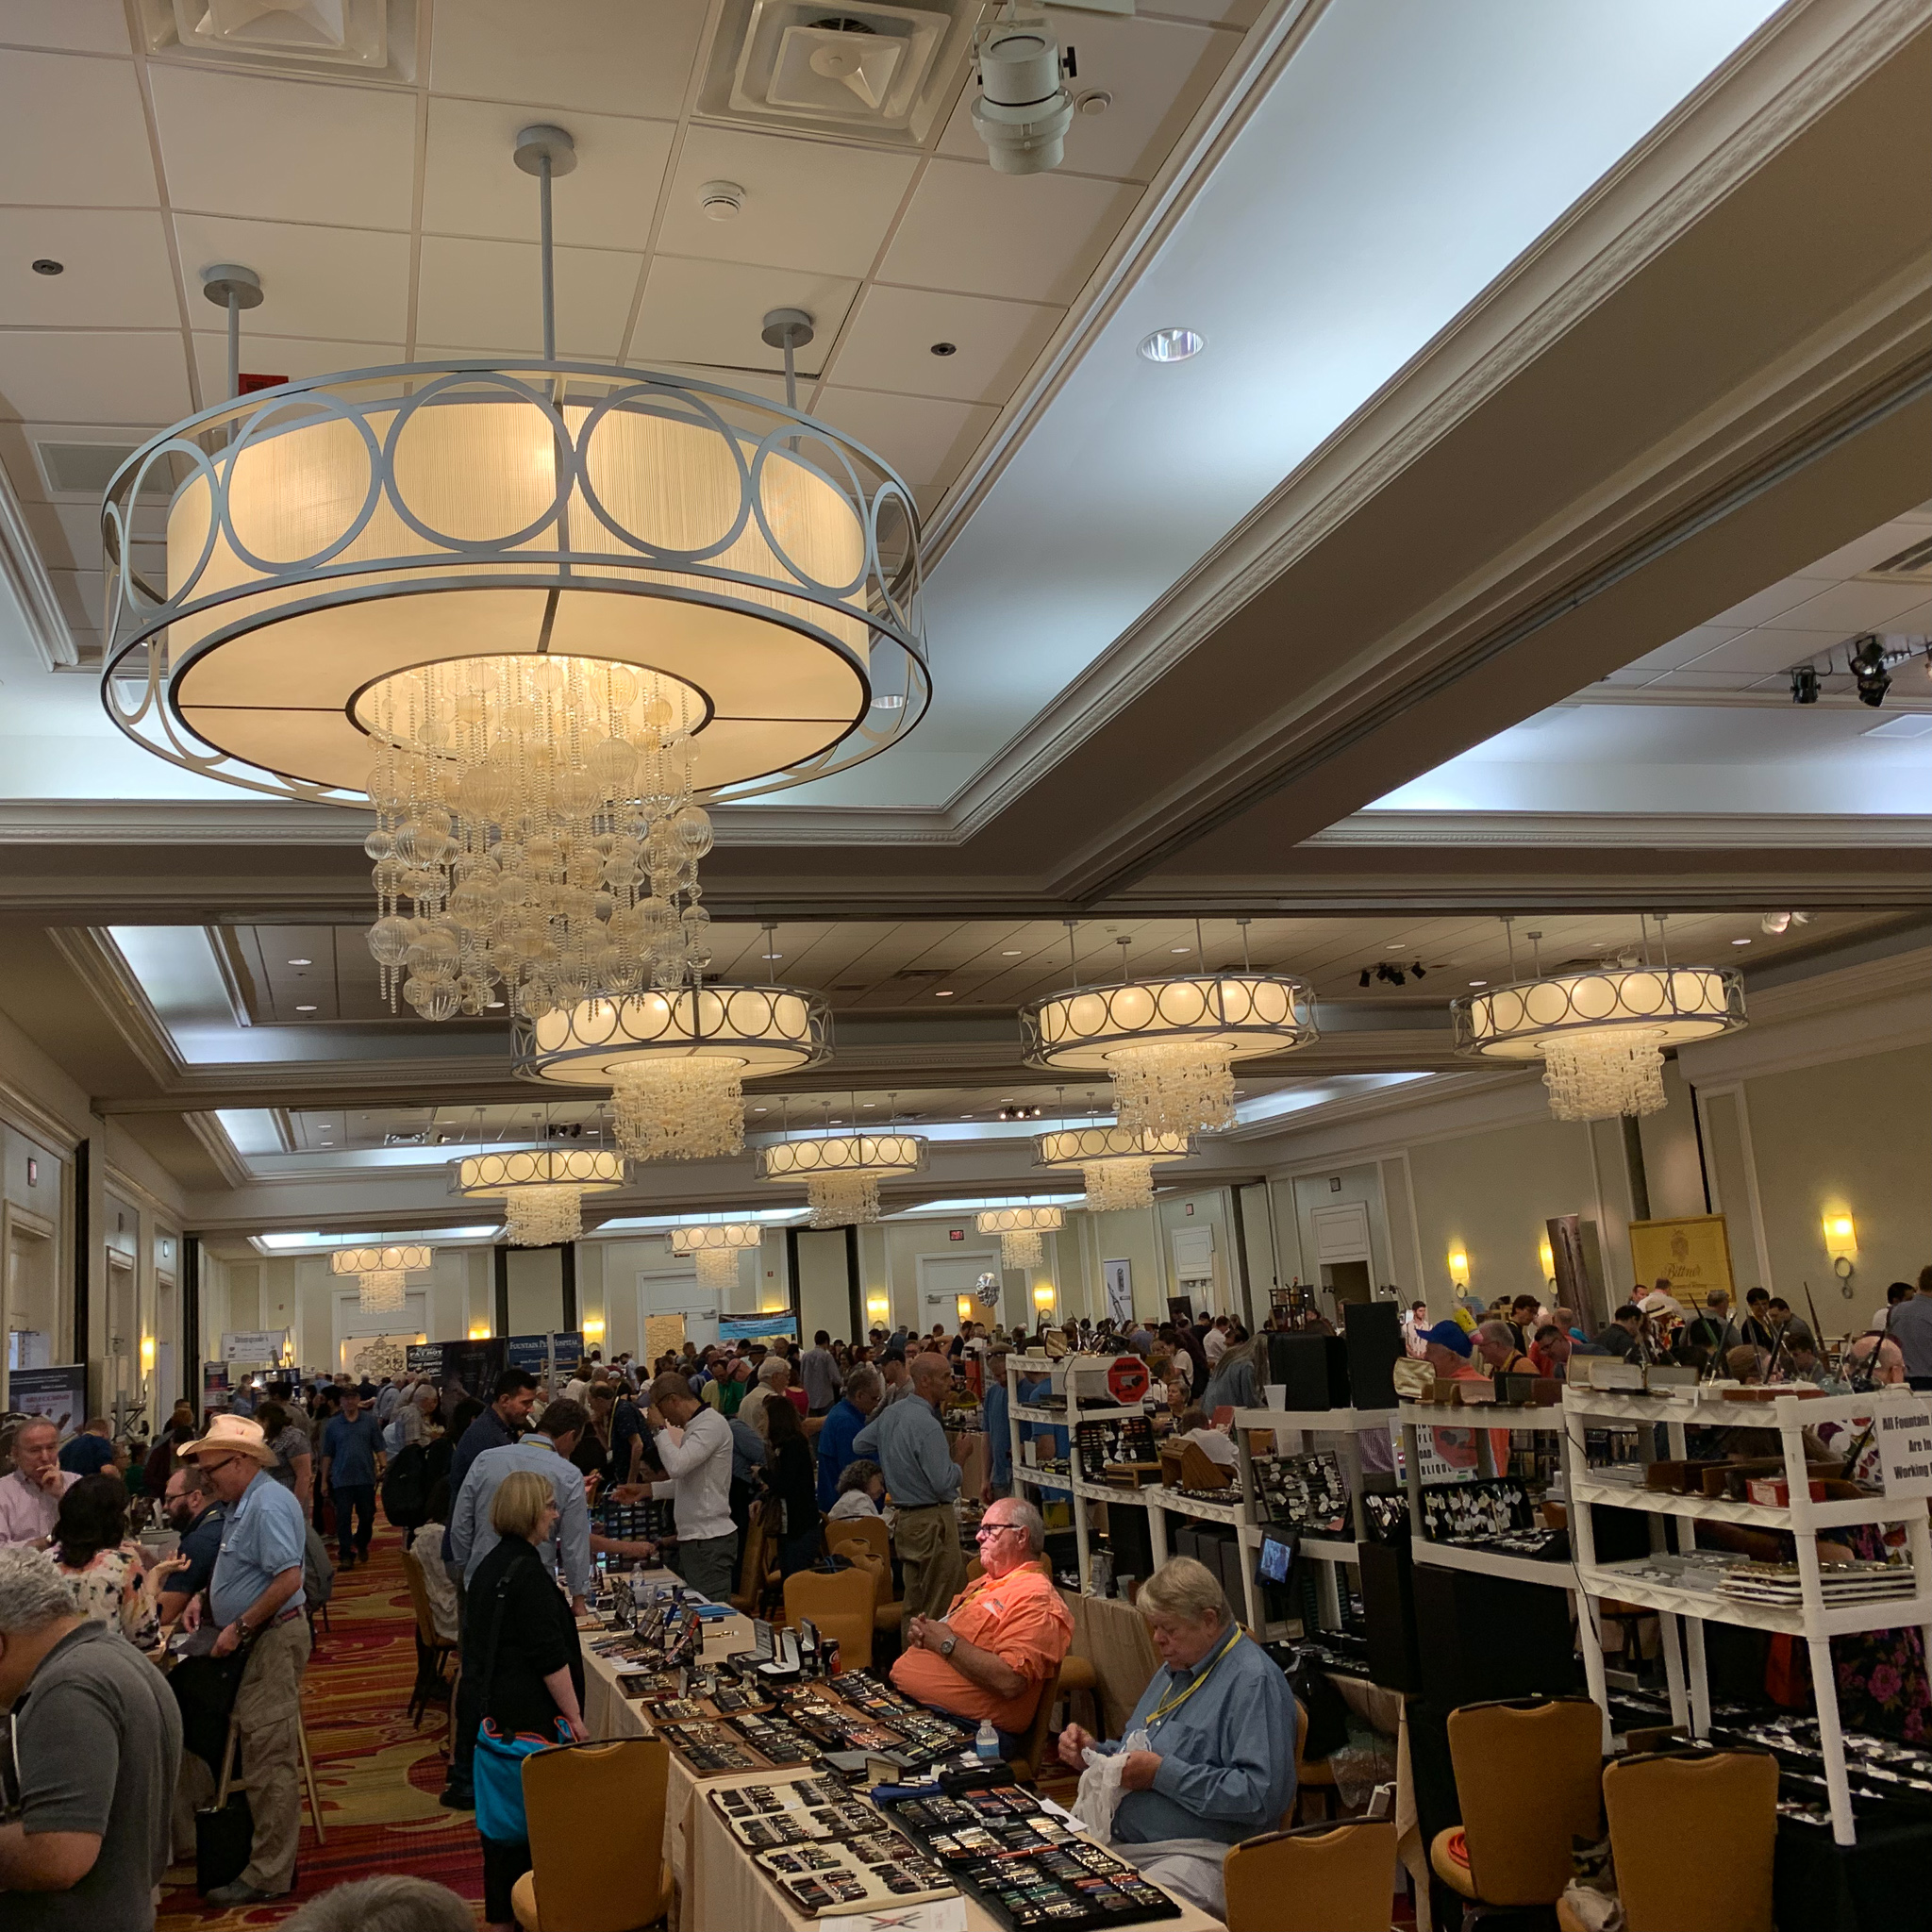 And by Saturday afternoon, the main ballroom was plenty busy. (This was taken after the main rush, probably around 3:30 or so).